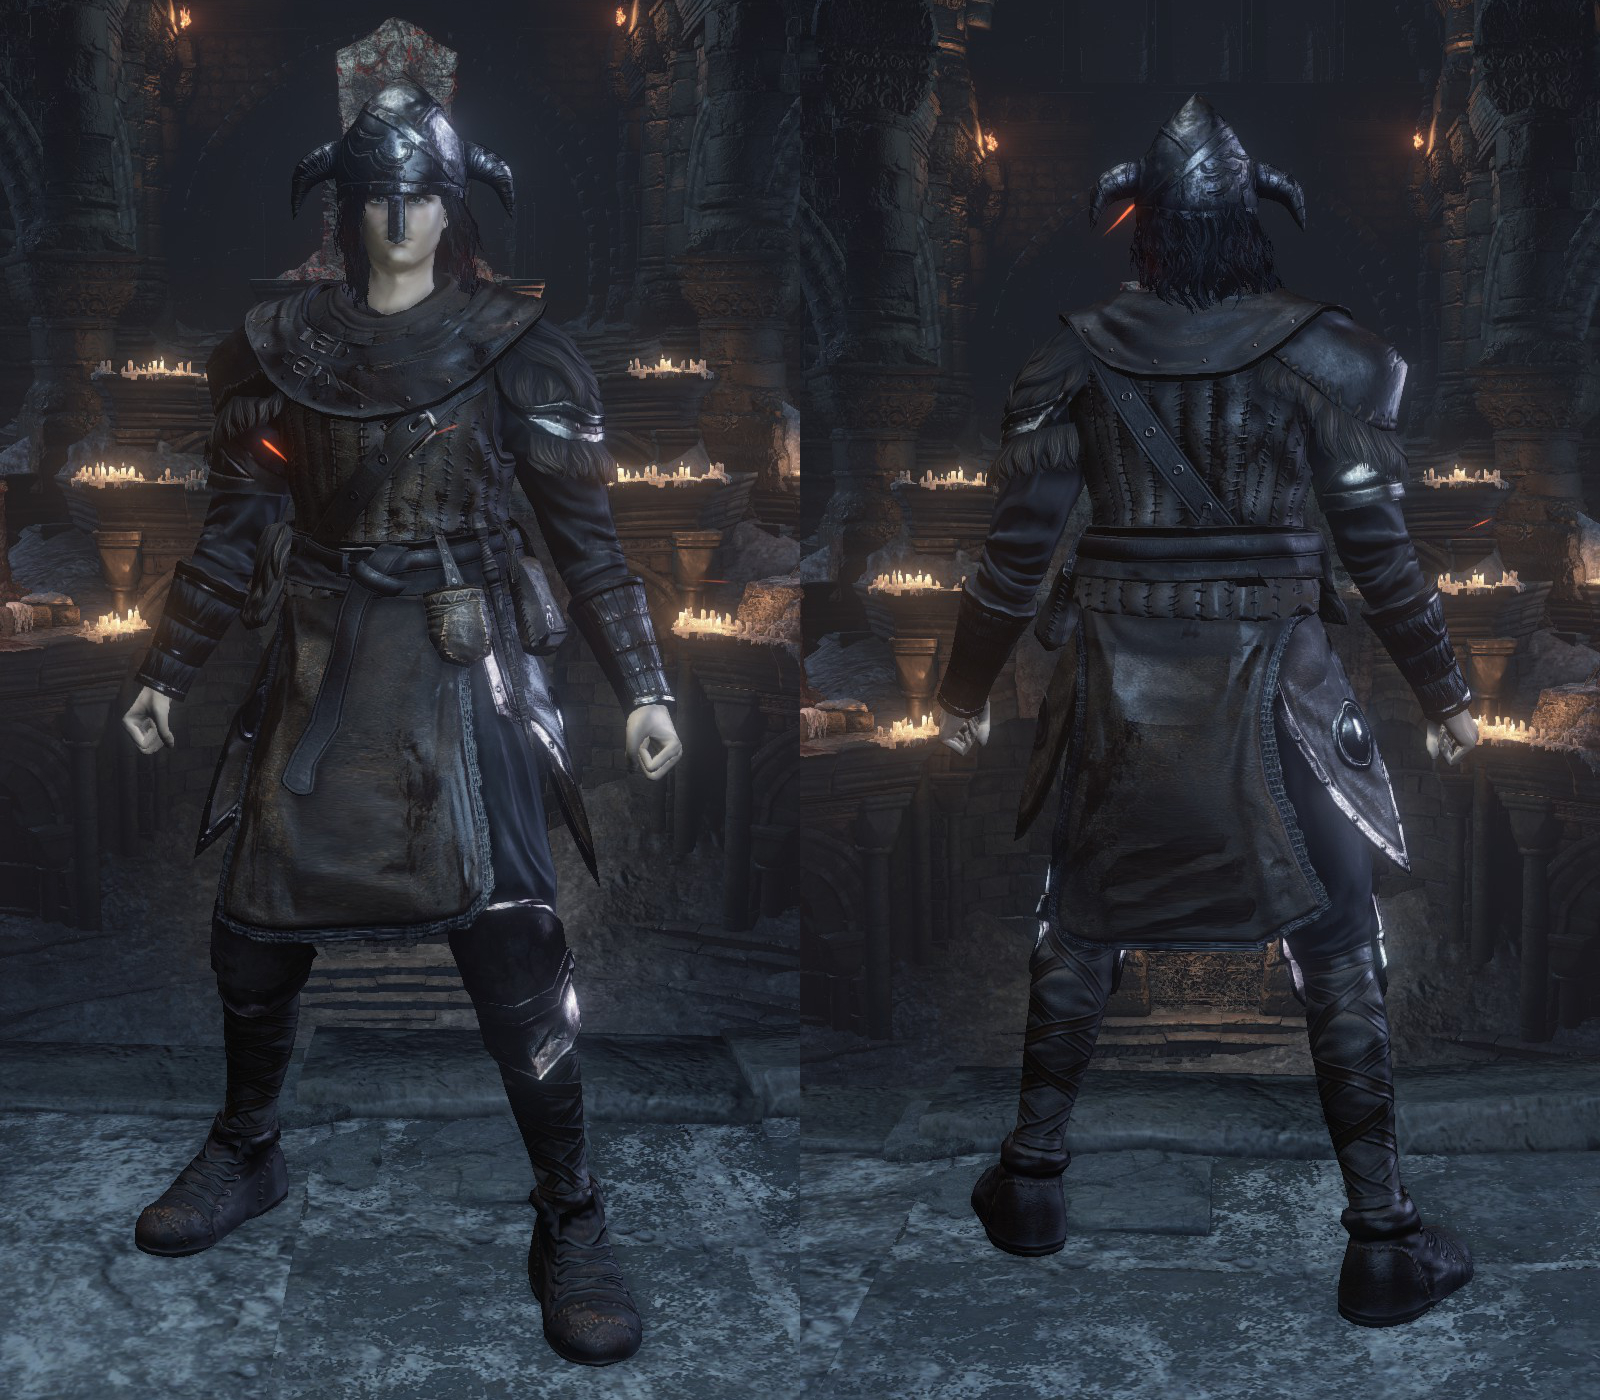 Dark Souls 3 Unused Weapons And Armors Screens Surface Online, New